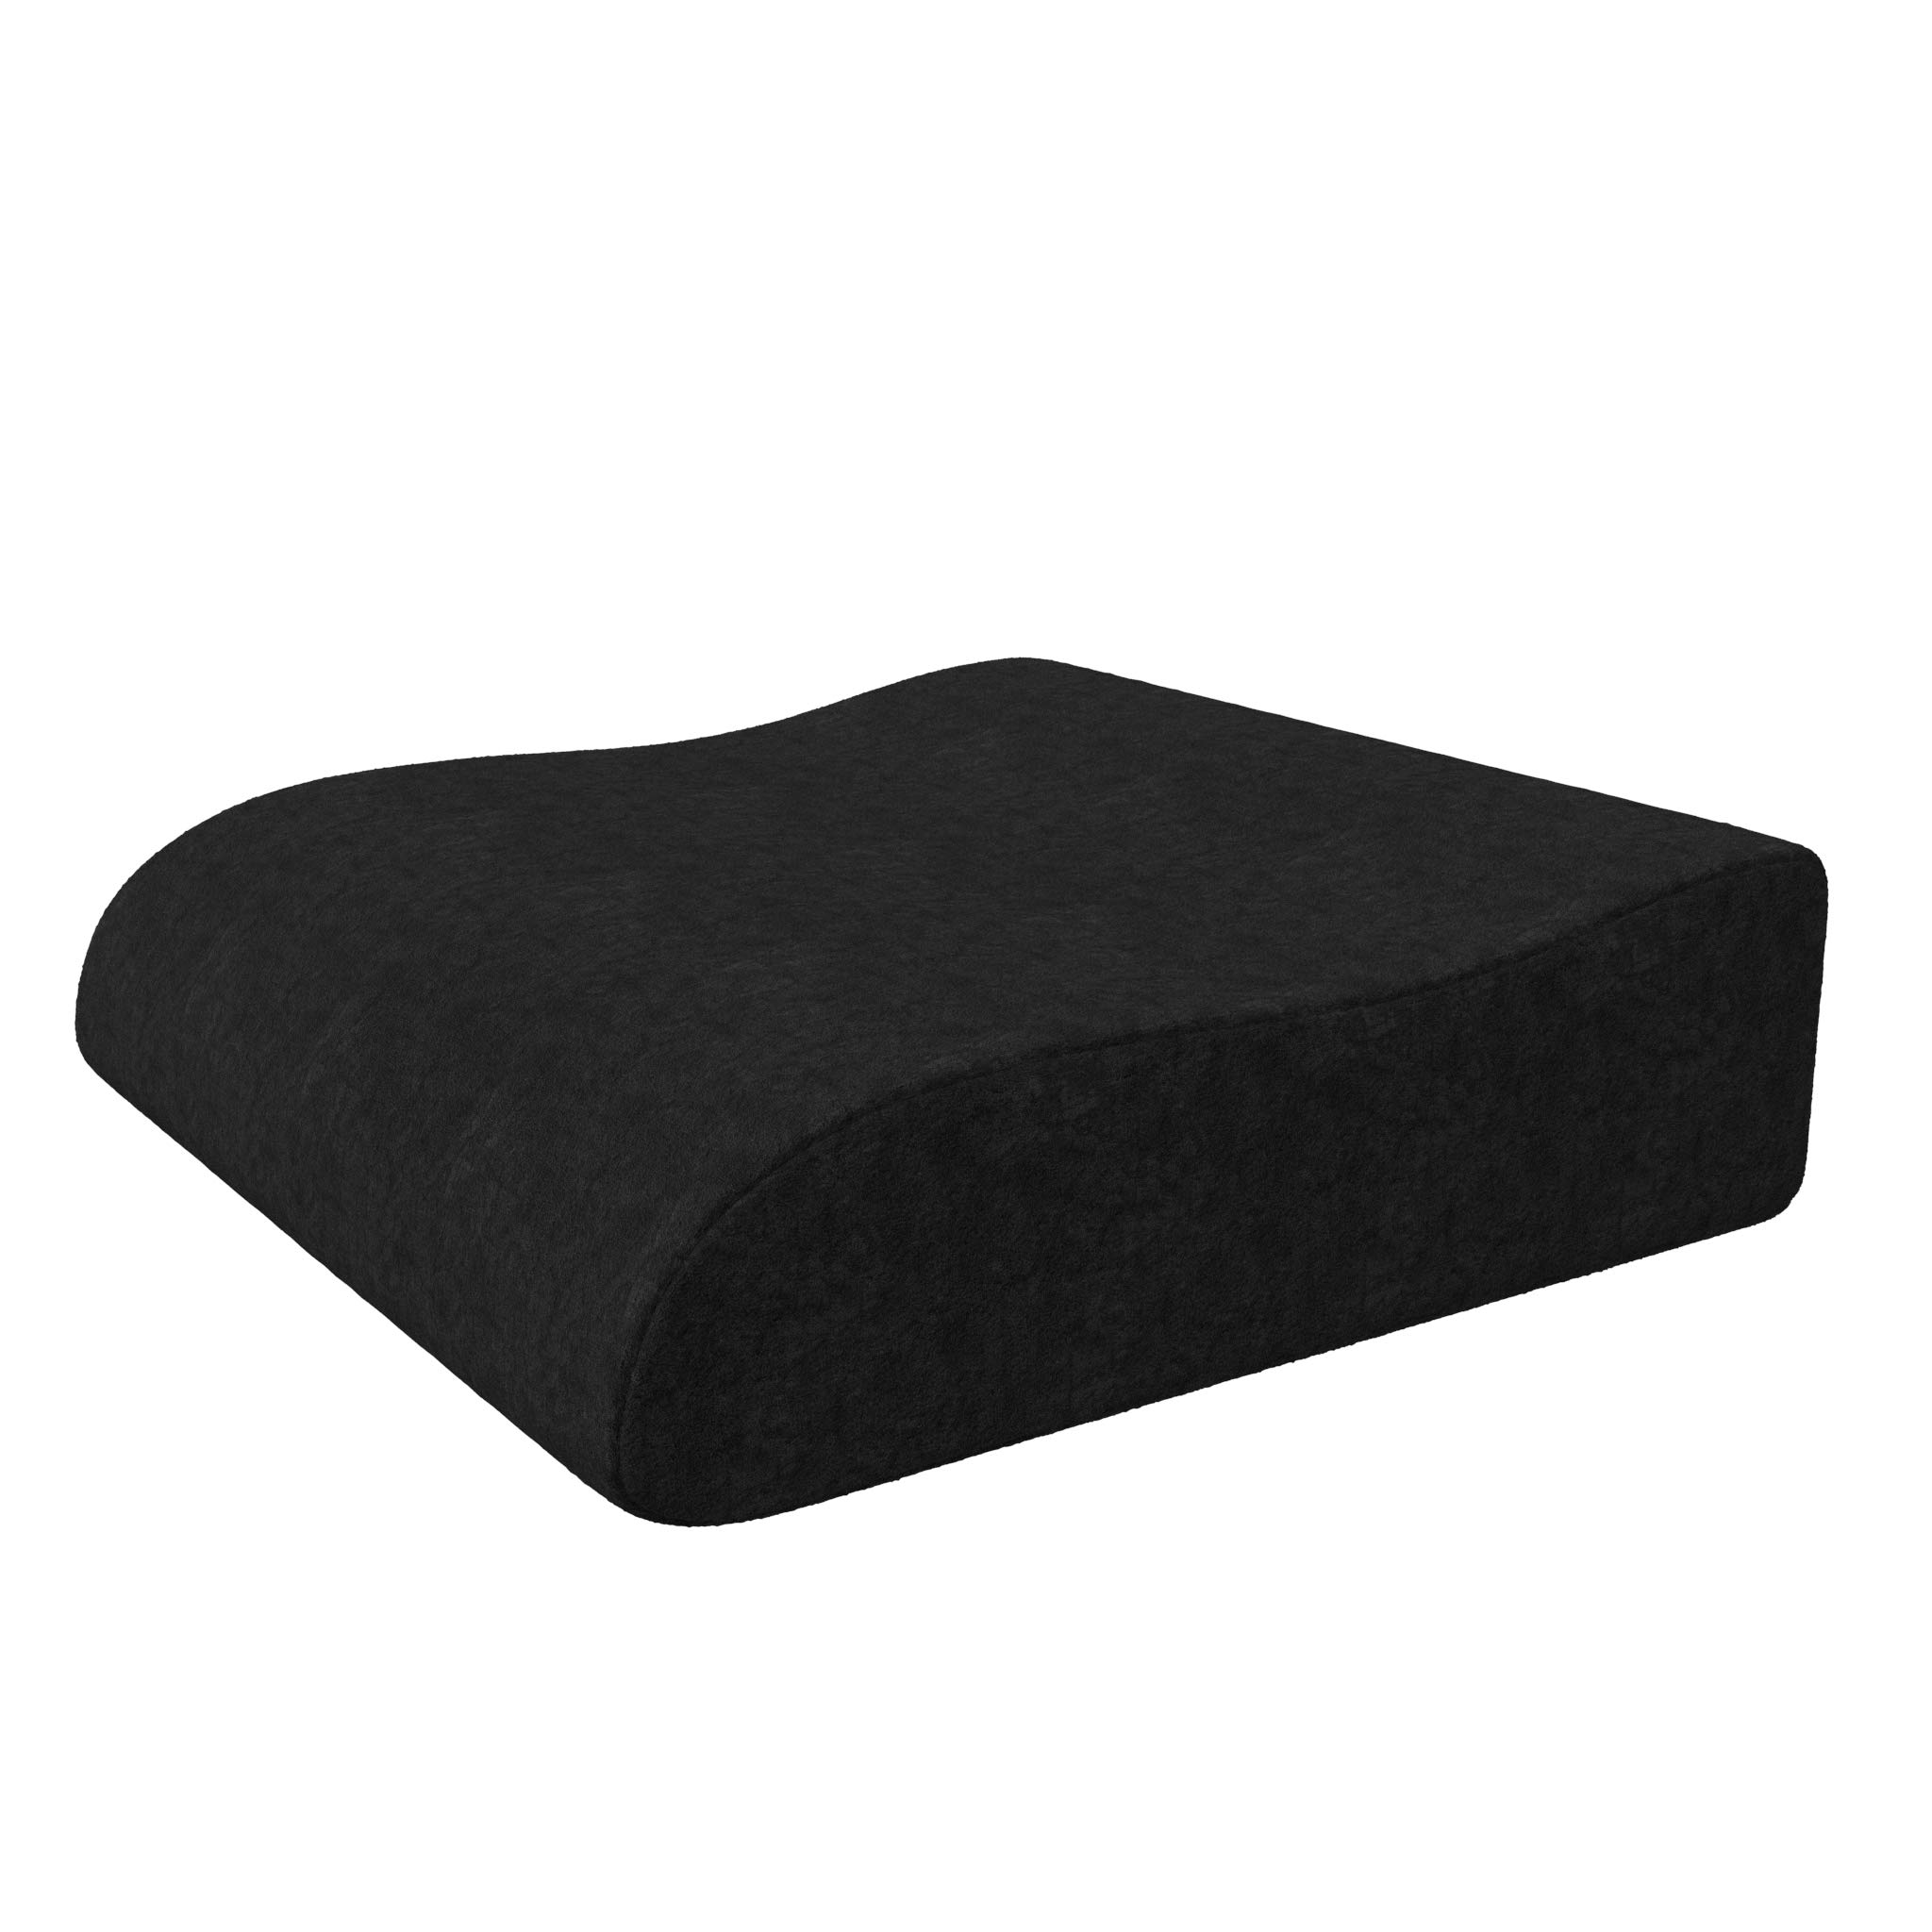 bonmedico Raiser Booster Seat Cushion - Home Office Foam Chair Cushion, Ergonomic Wedge Cushion with High Seating Comfort, Booster Seat to Support Standing Up